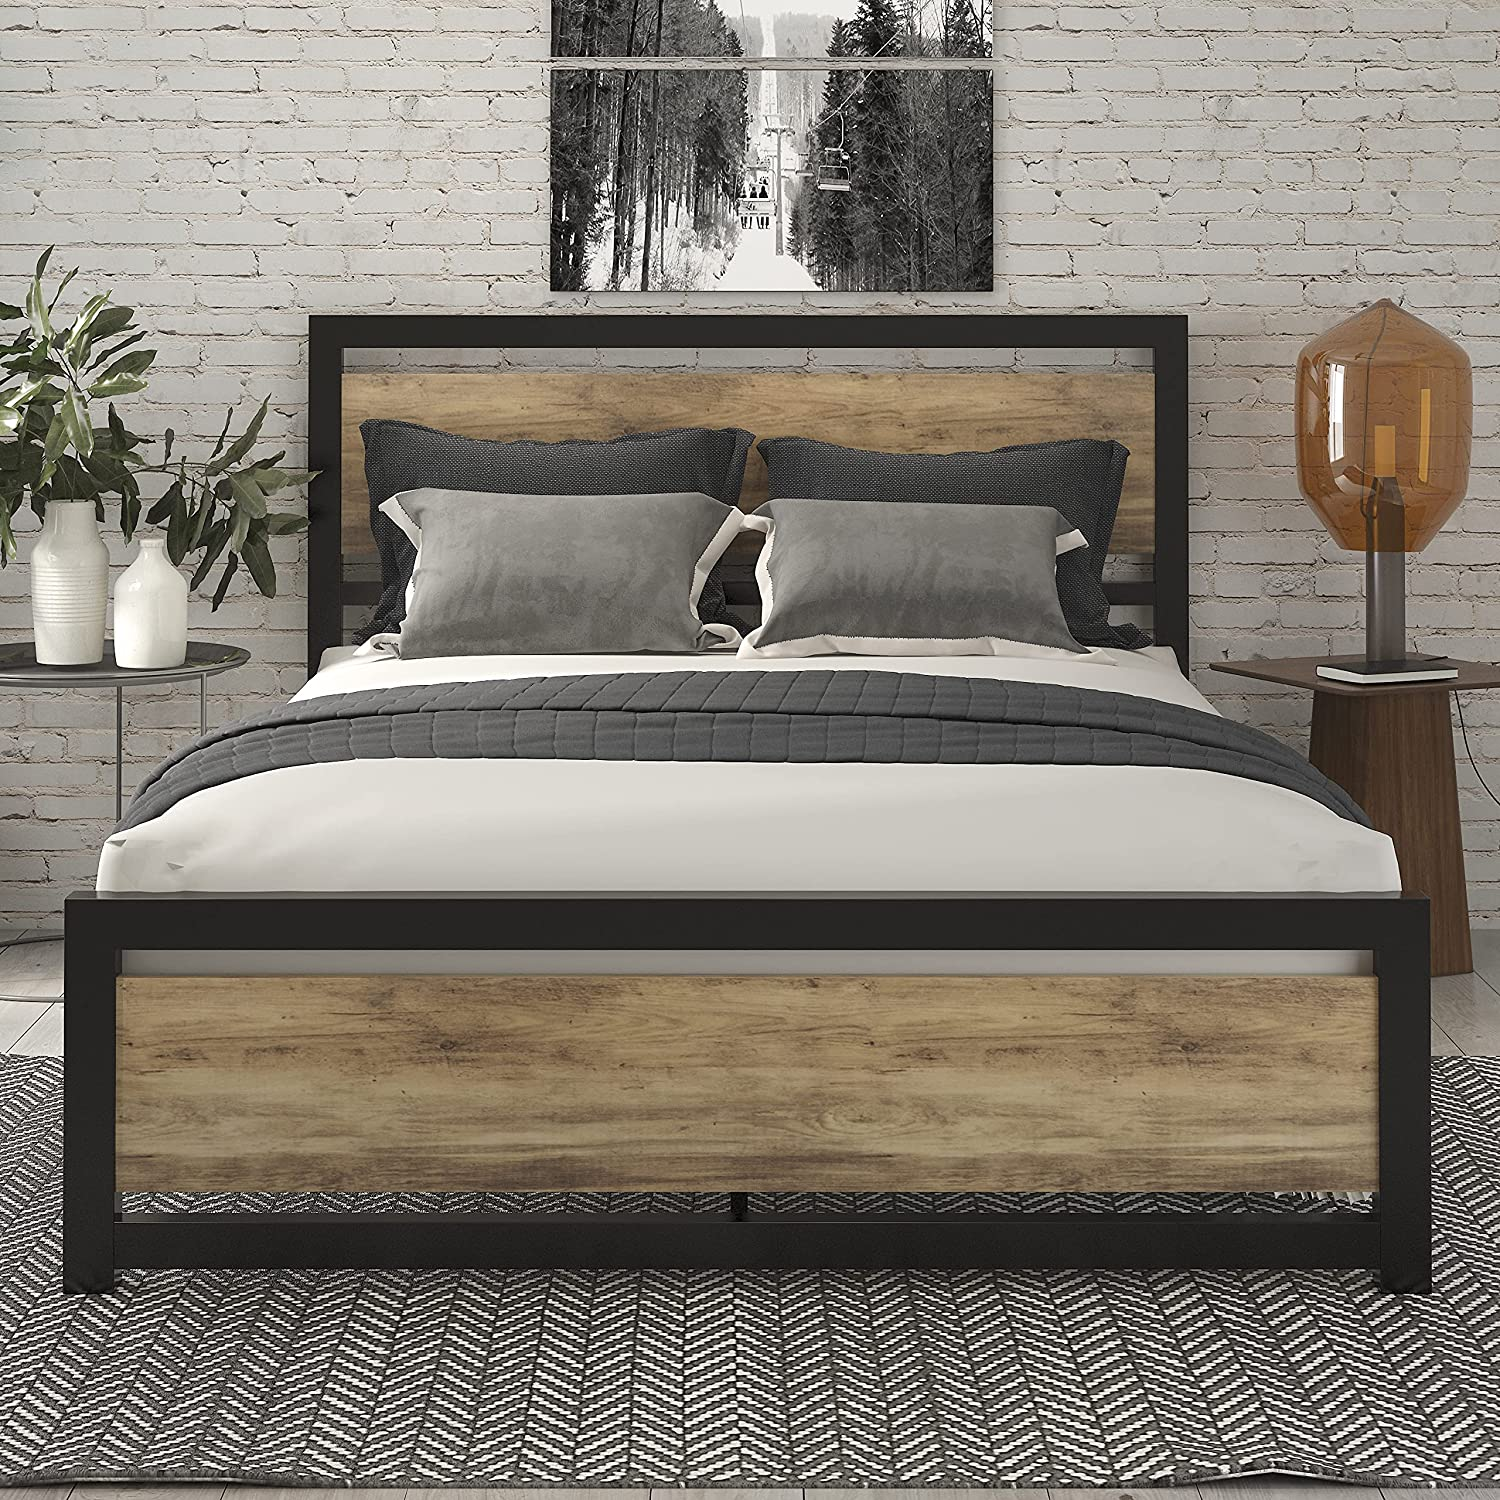 Max Superior 78% OFF SHA CERLIN Queen Bed Frame with Heavy Headboard Modern Wooden